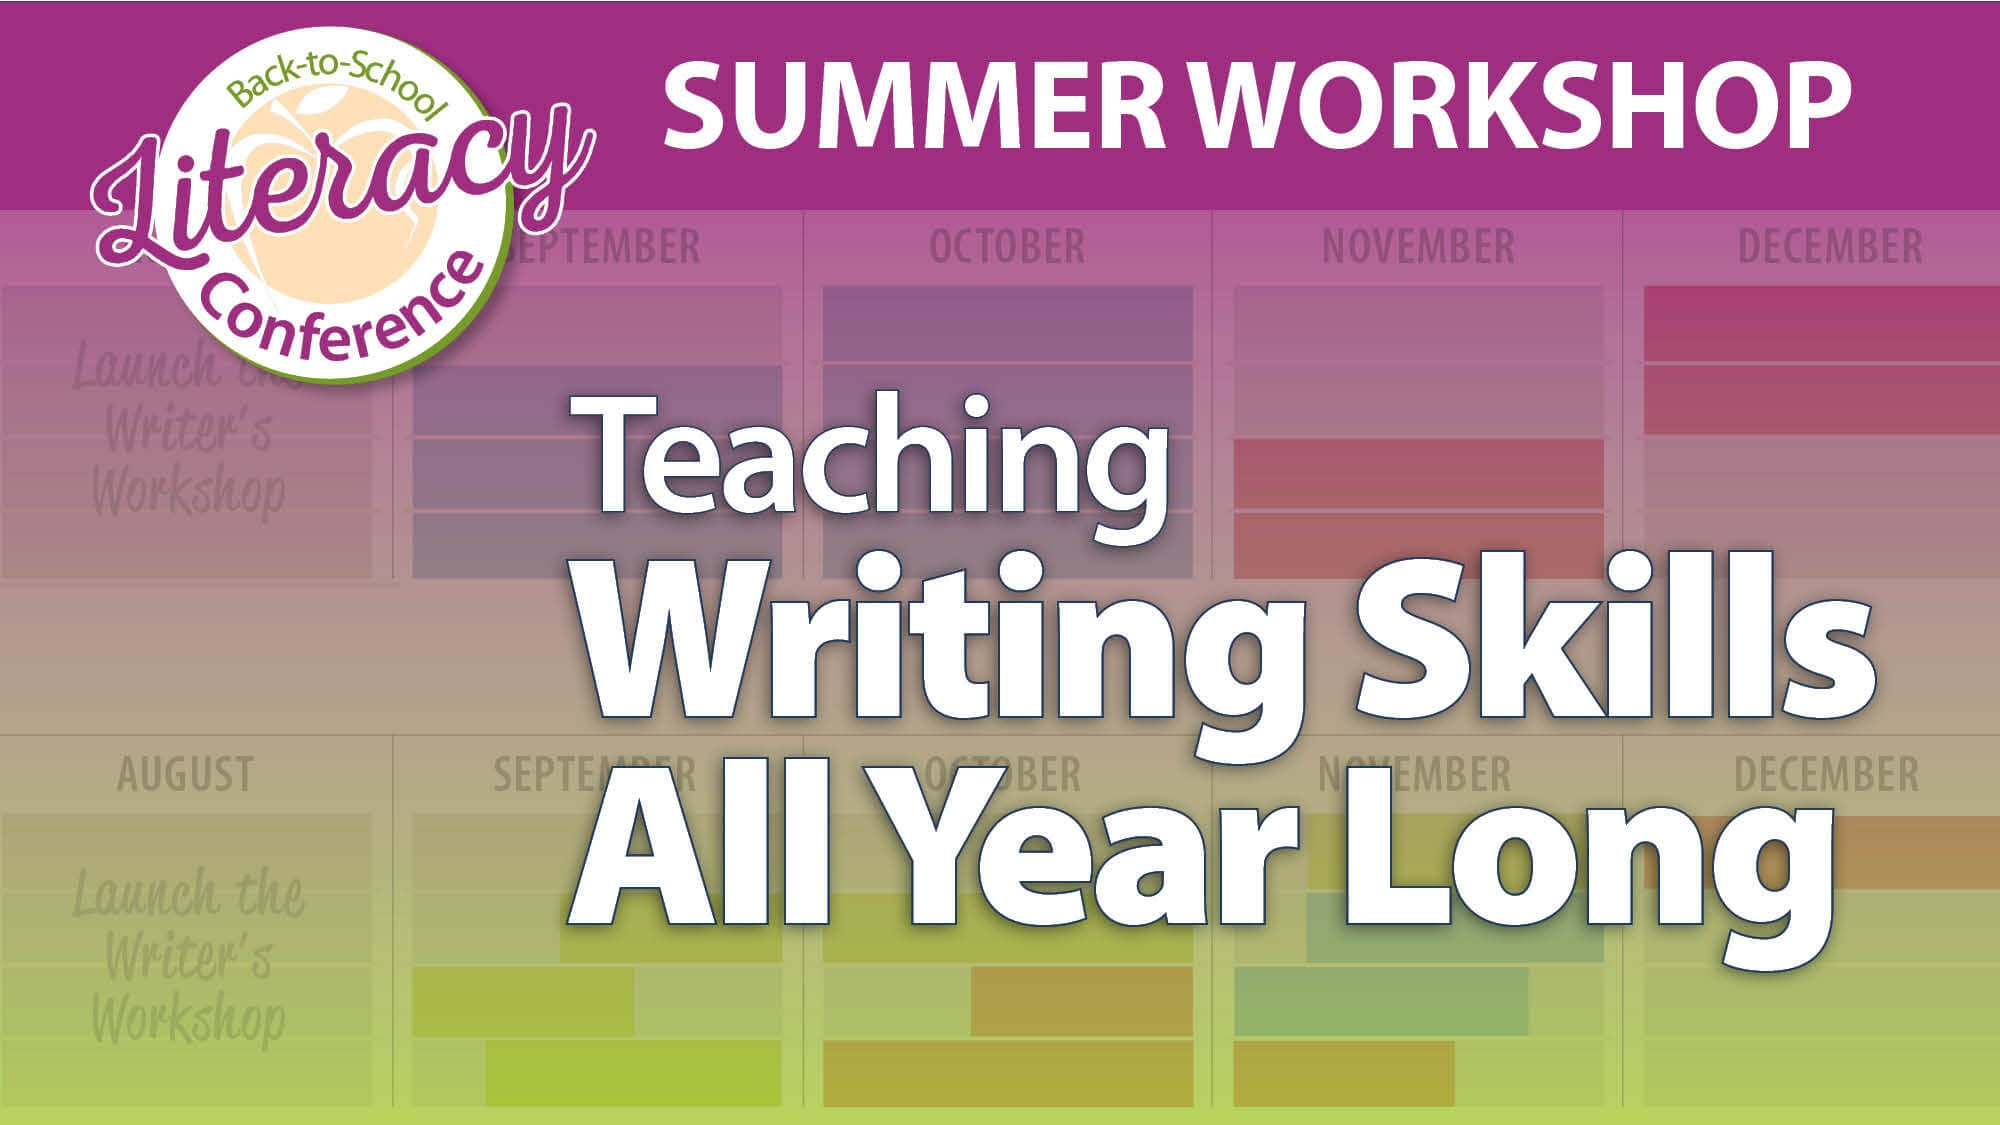 Back-to-School Literacy Conference: Teaching Writing Skills All Year Long